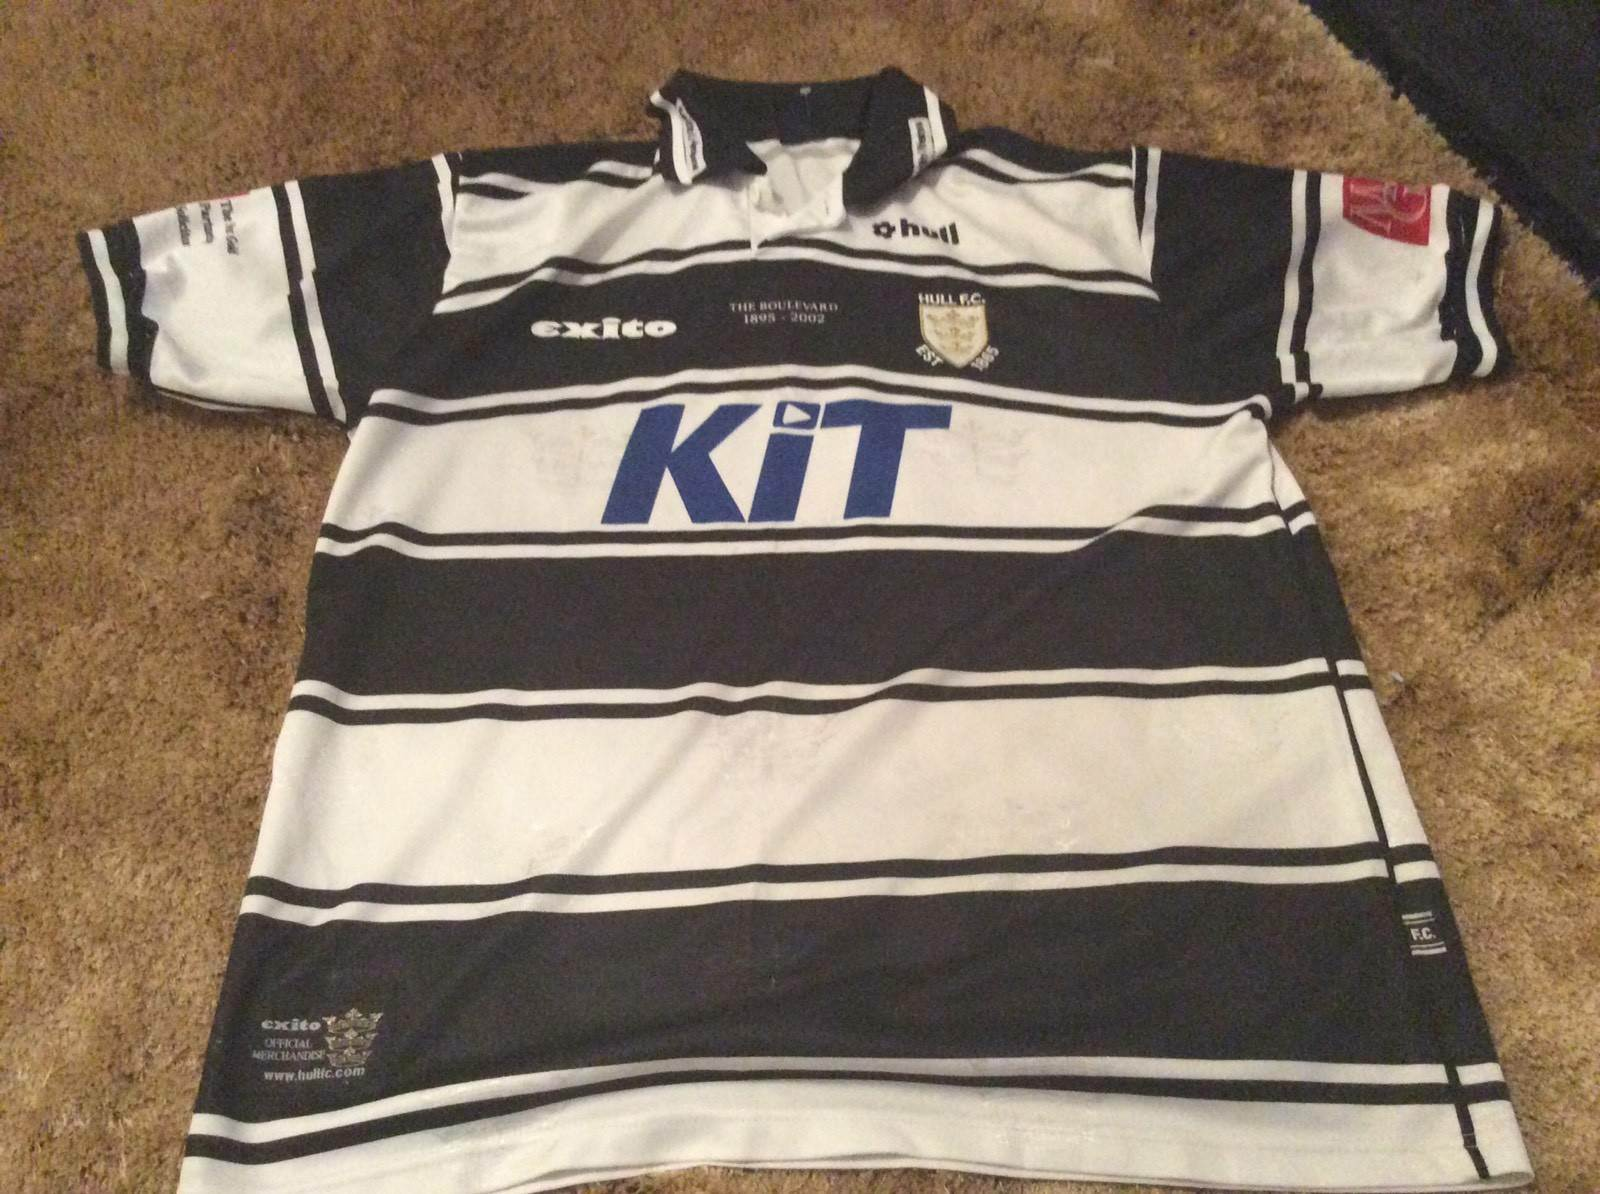 Mens HULL FC Rugby League Shirt Size Xl The Boulevard 1895 2002 Kit Three Crowns